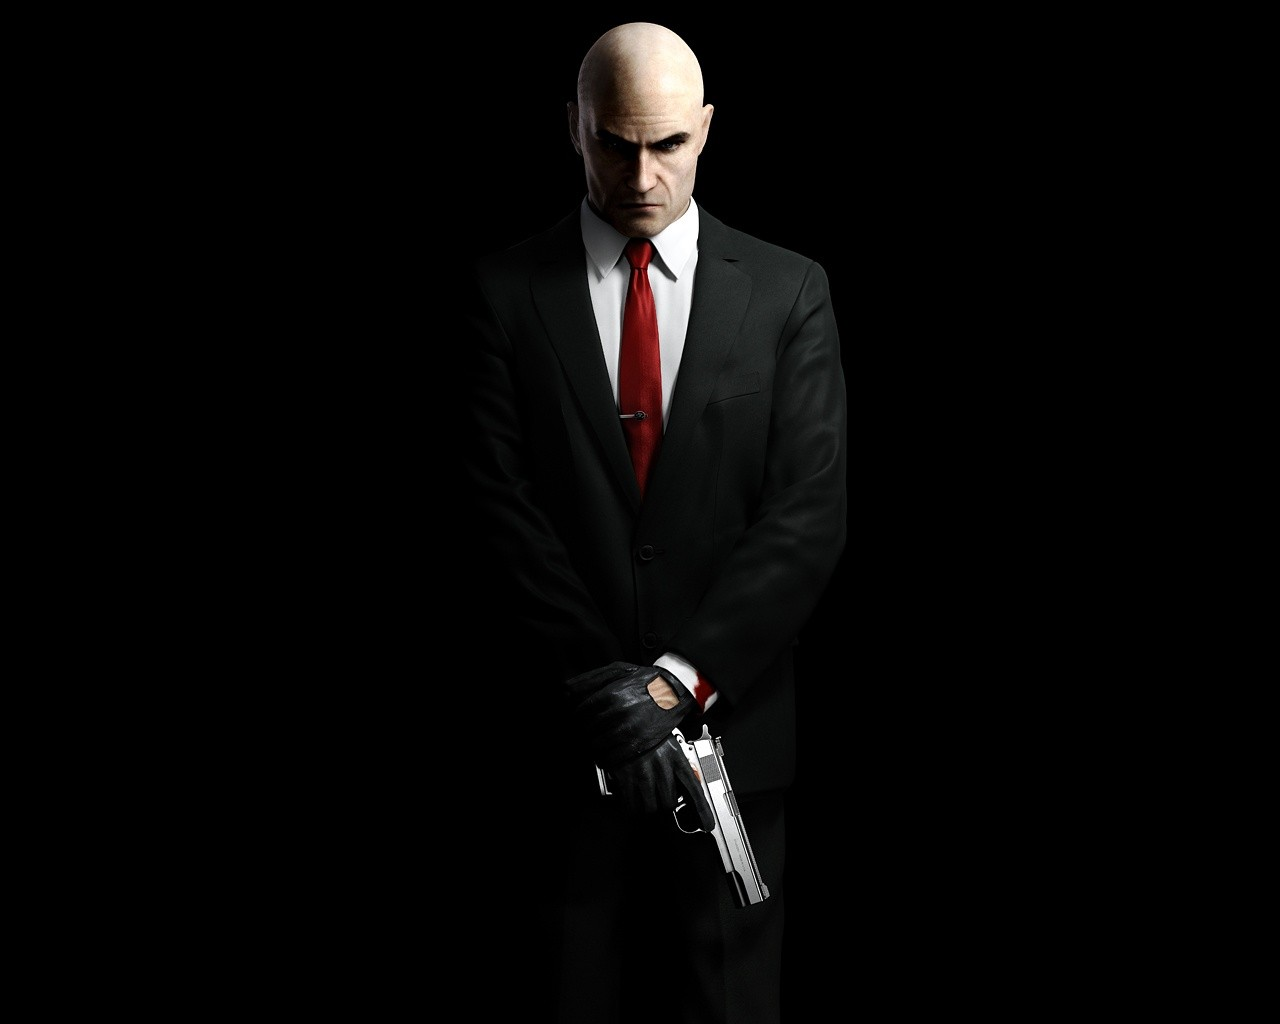 Hitman (Wallpapers)